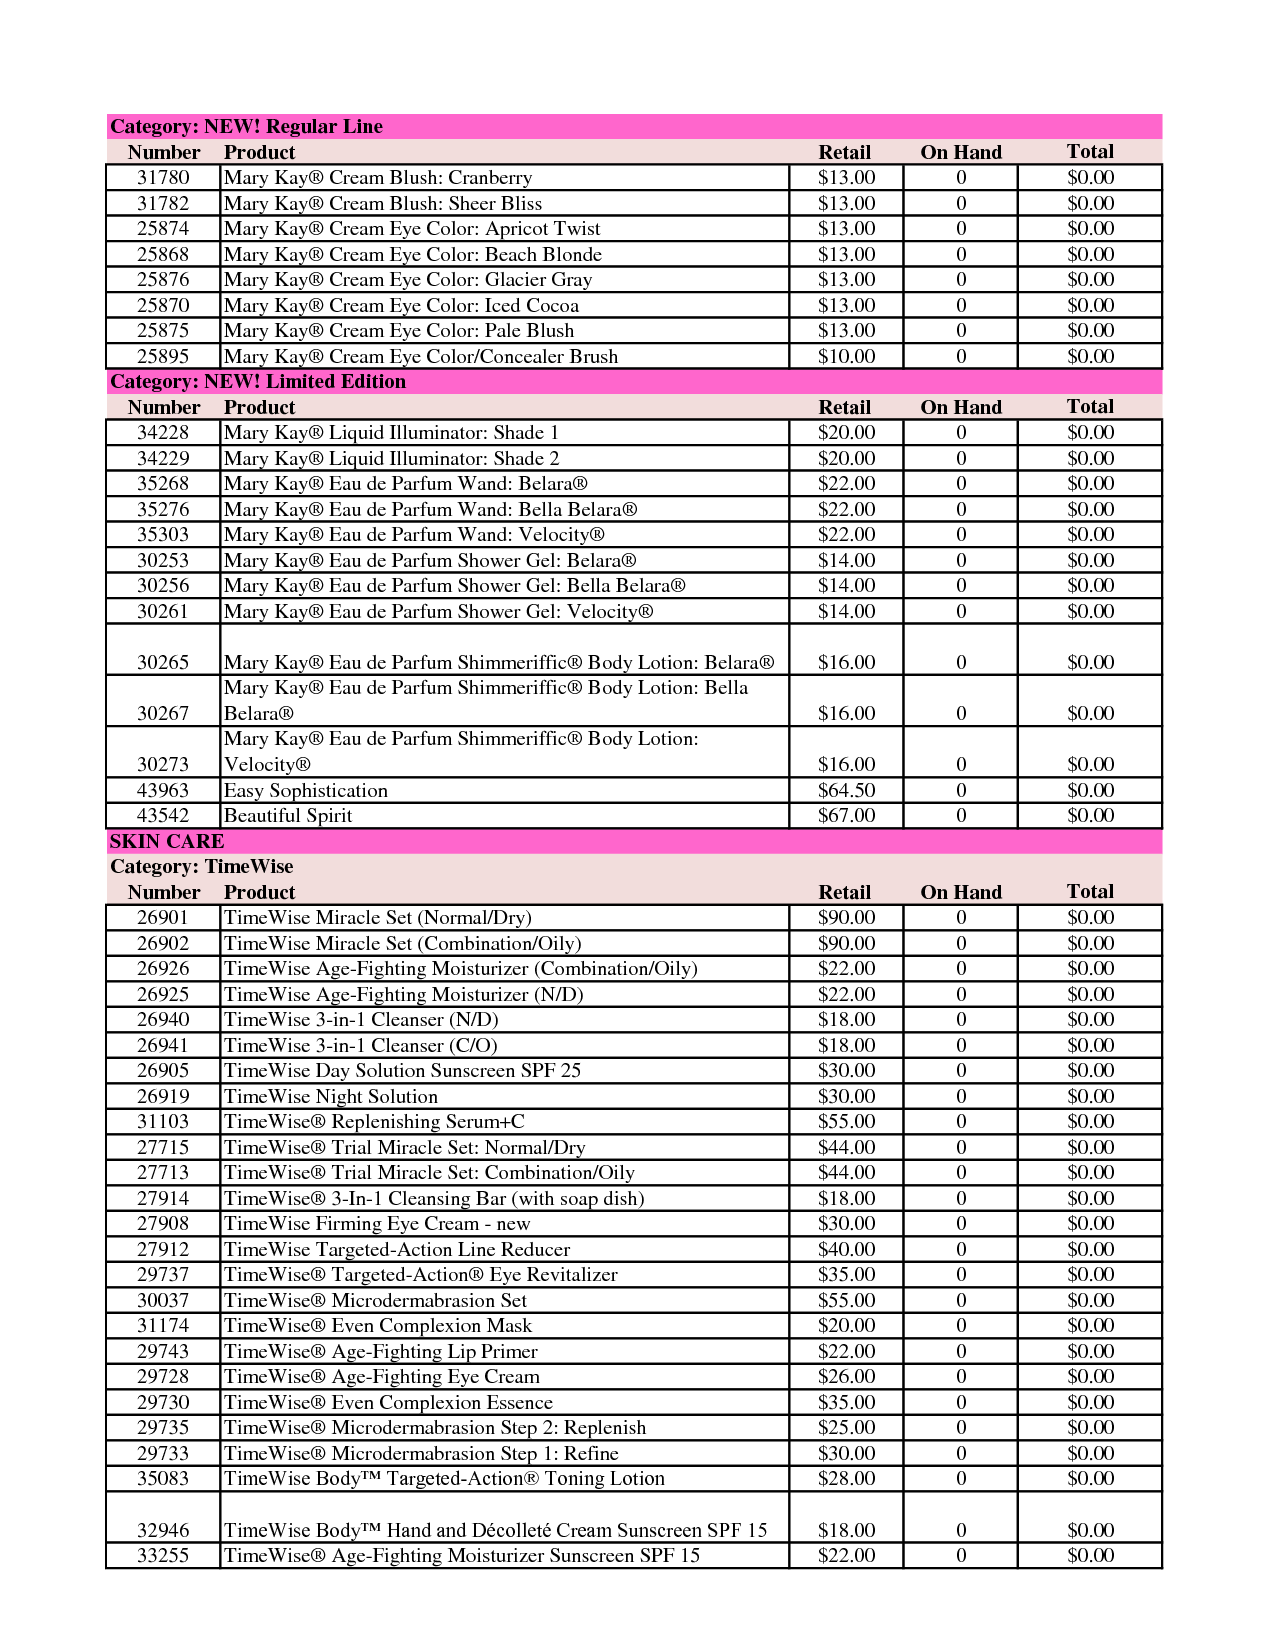 Mary Kay Inventory Template